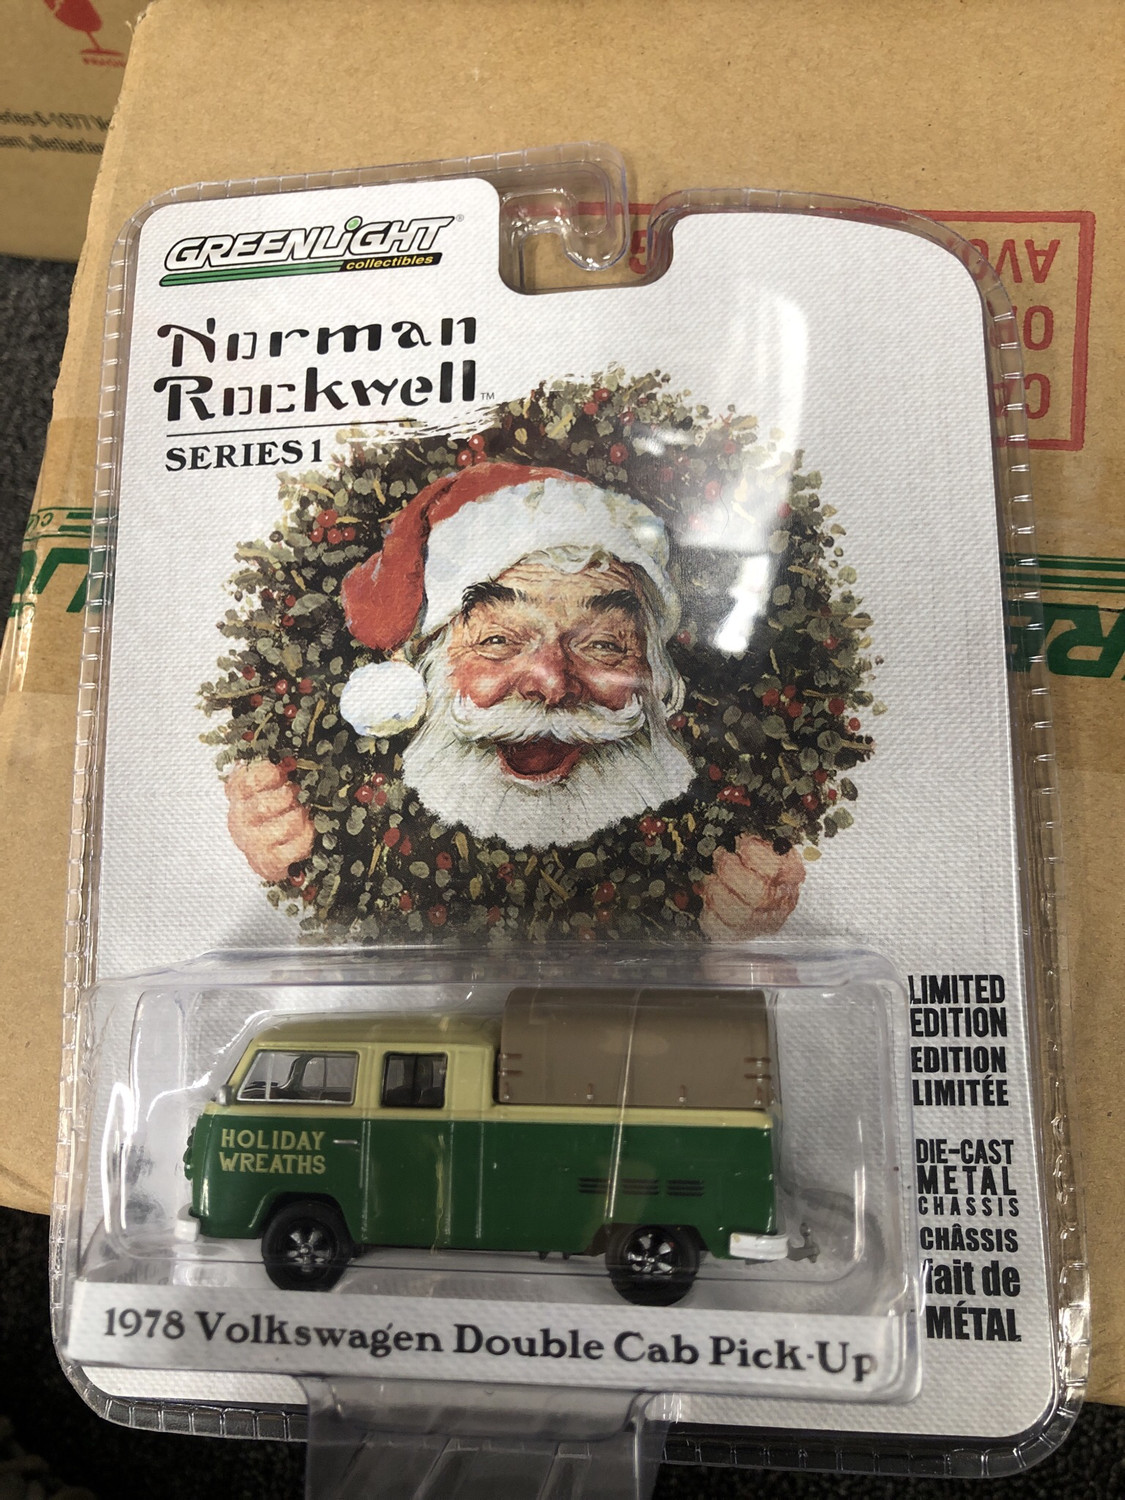 Greenlight-Norman Rockwell-1978 Volkswagen Double Cab Pick-Up